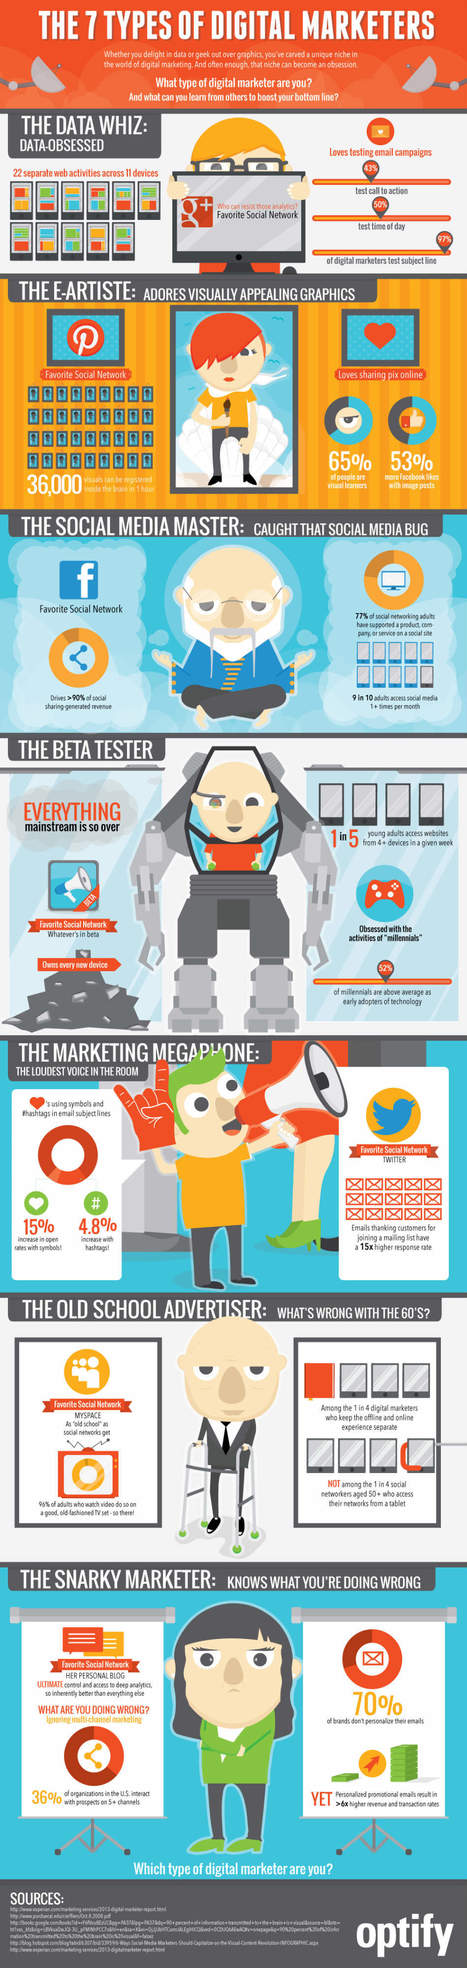 The 7 Types of Digital Marketer | Integrated Brand Communications | Scoop.it